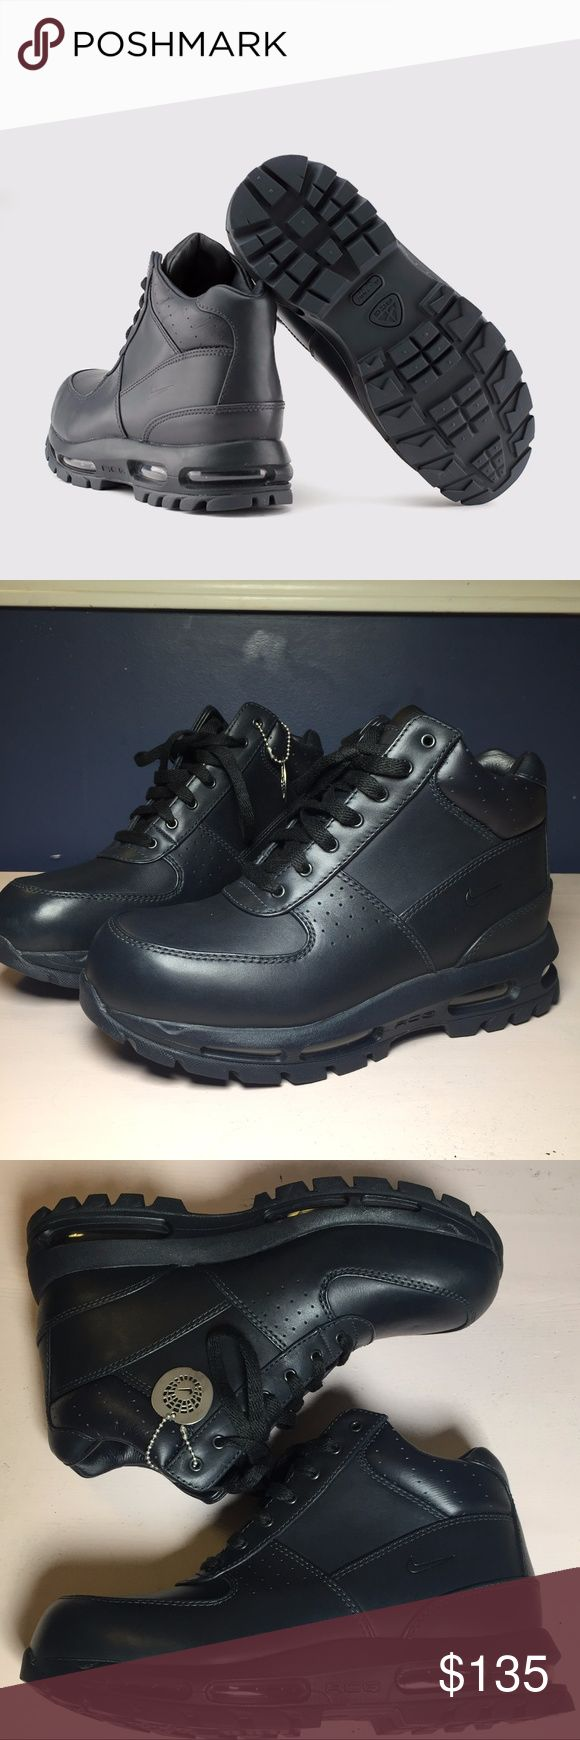 197f4324979 Best 25+ Nike goadome boots ideas on Pinterest